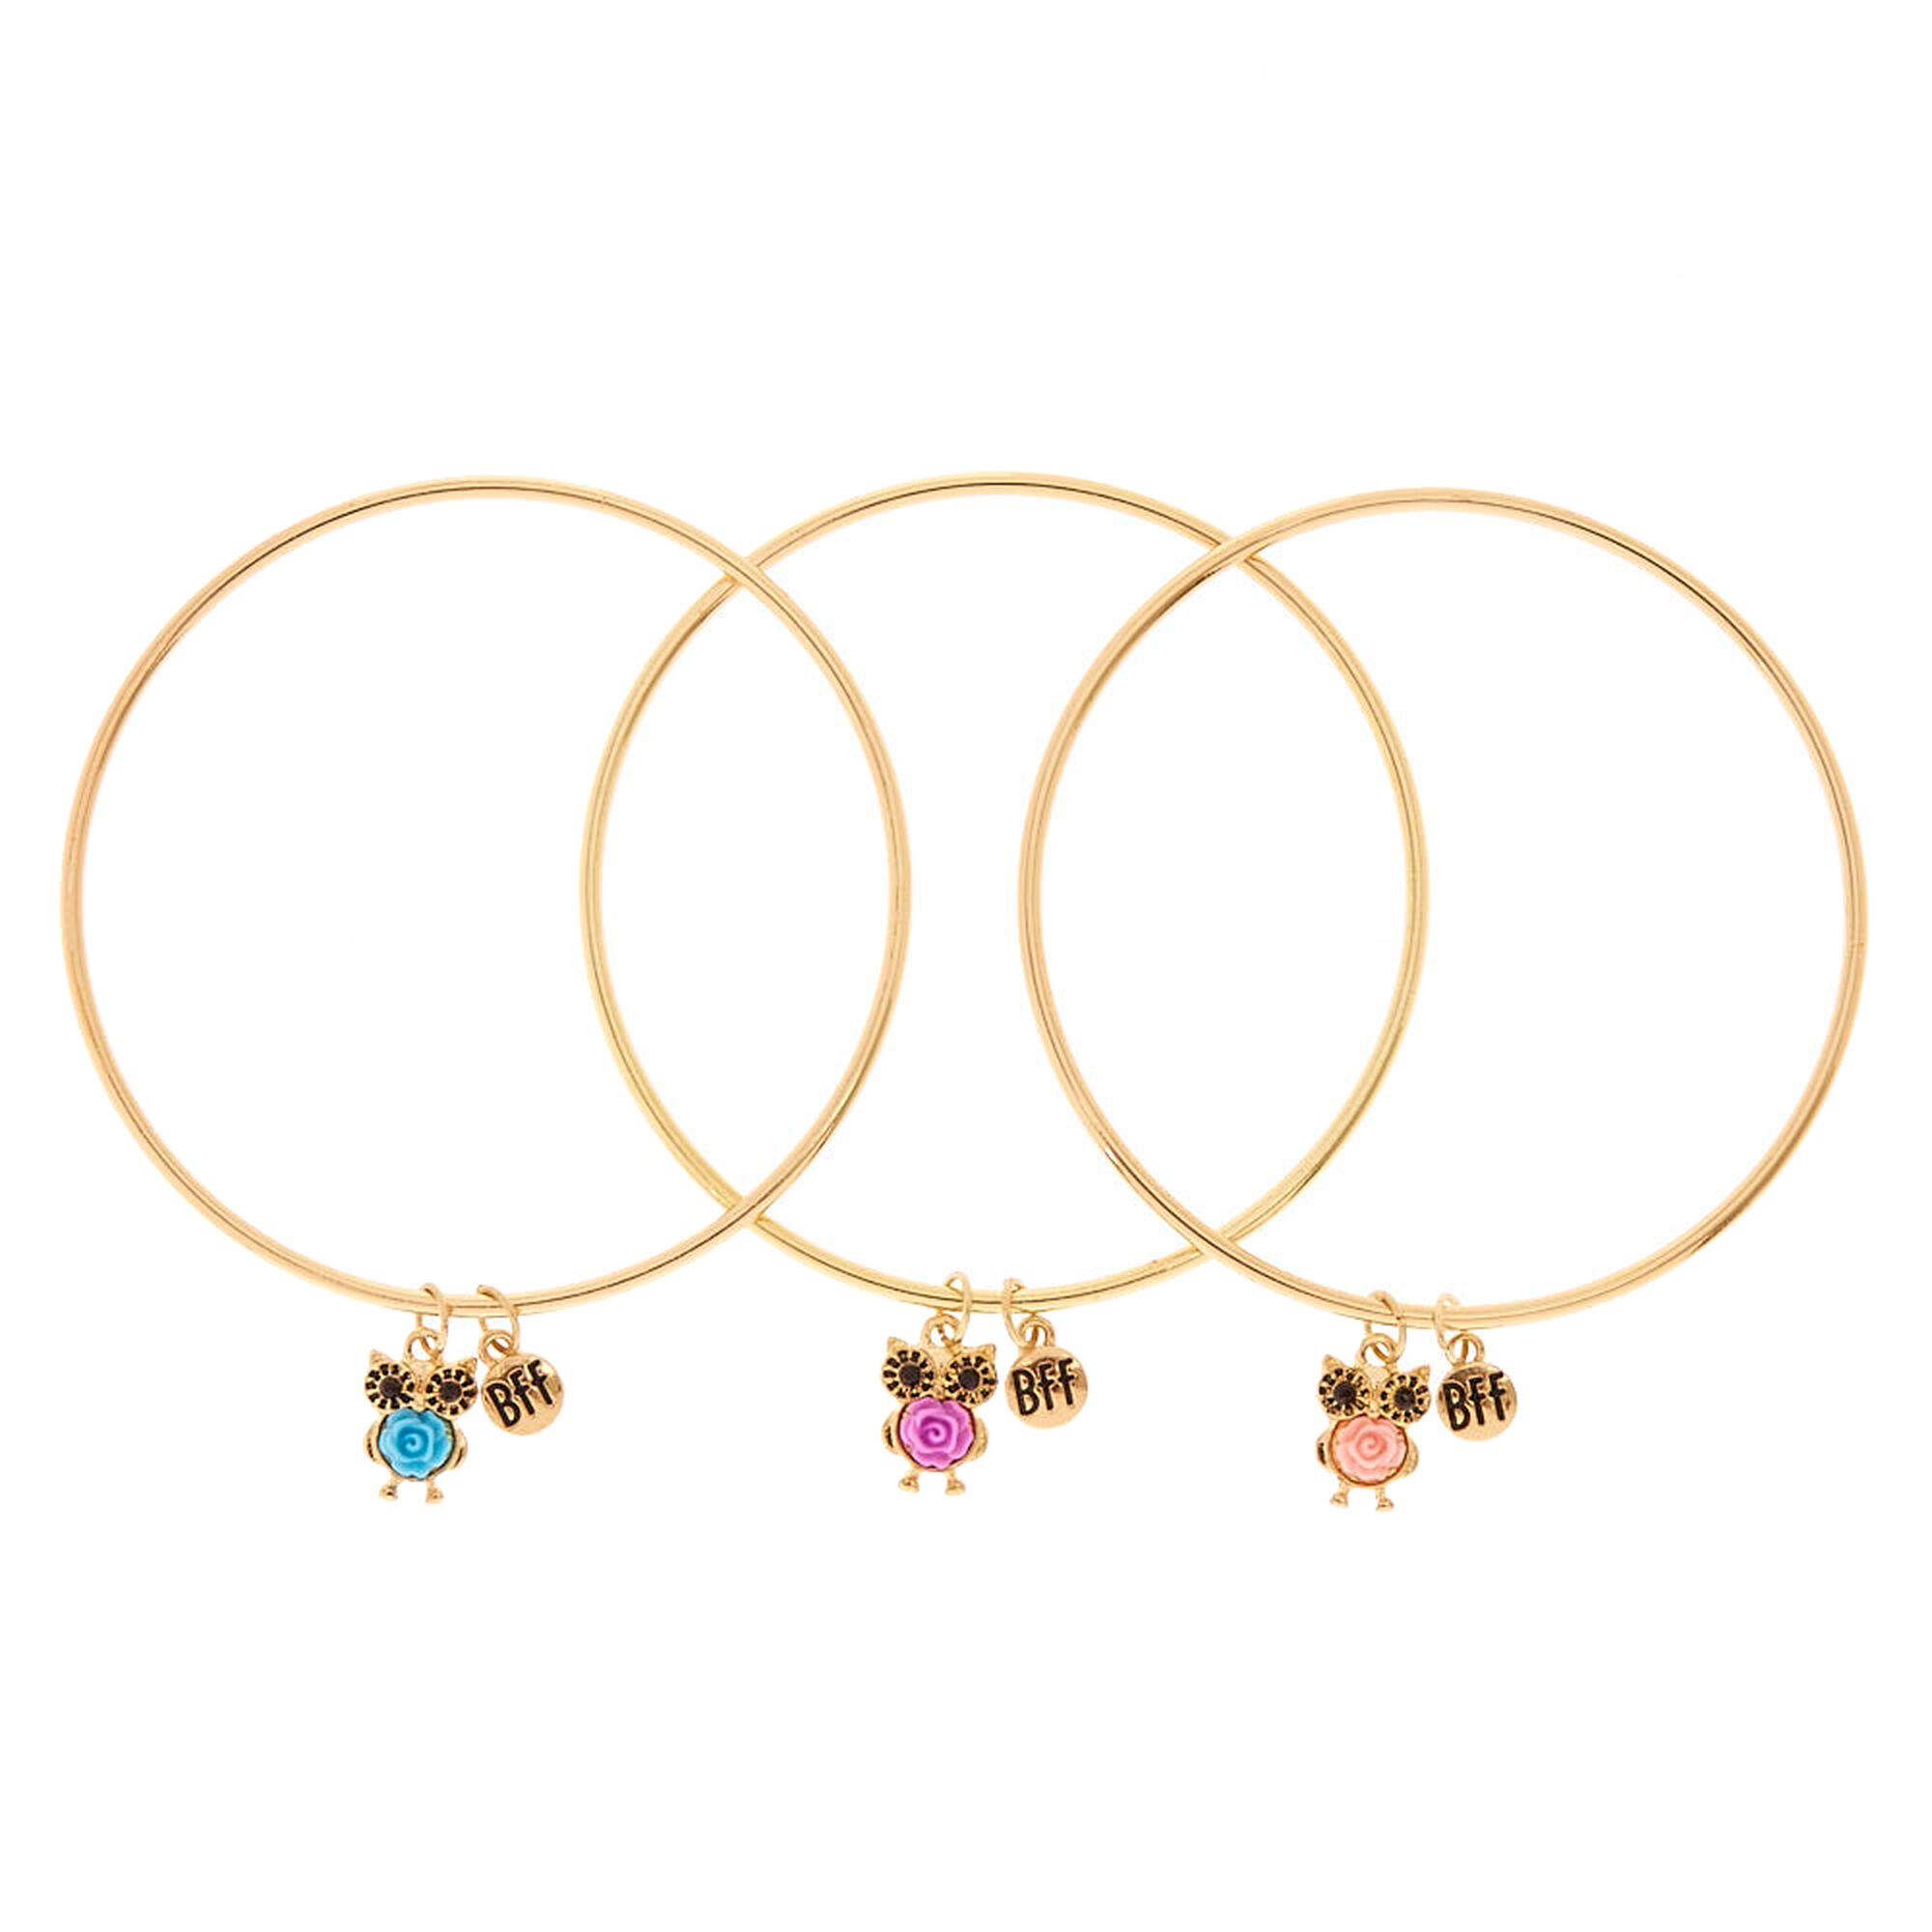 Best Friends Gold Tone Owl Charm Bangle Bracelets